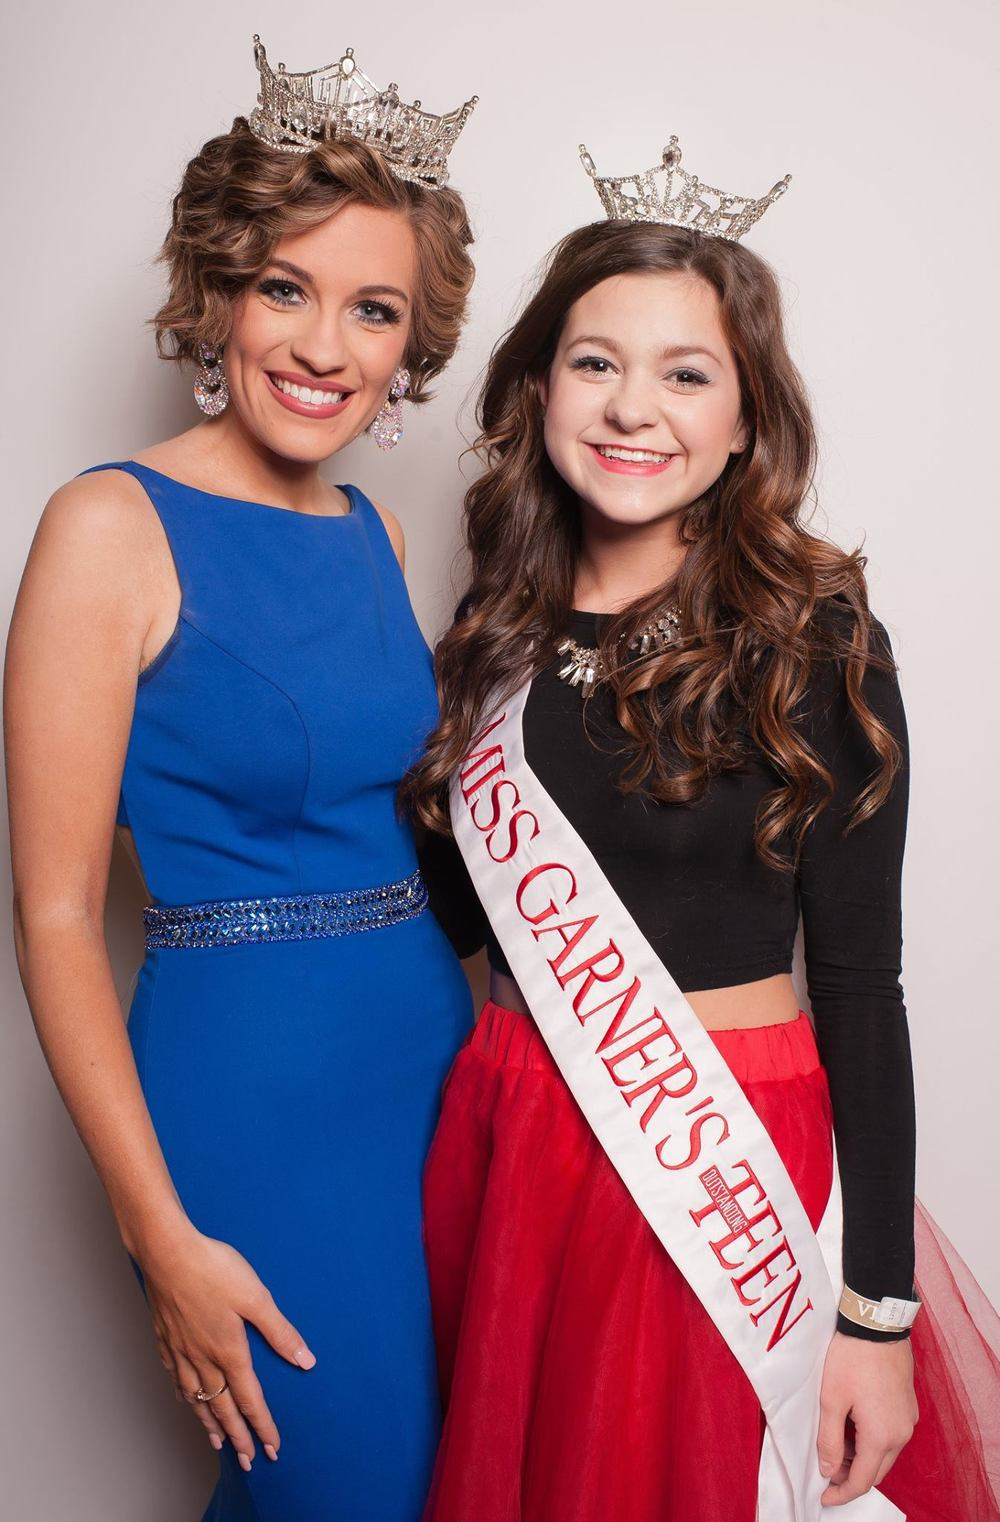 Calli with Miss America 2016, Betty Cantrell